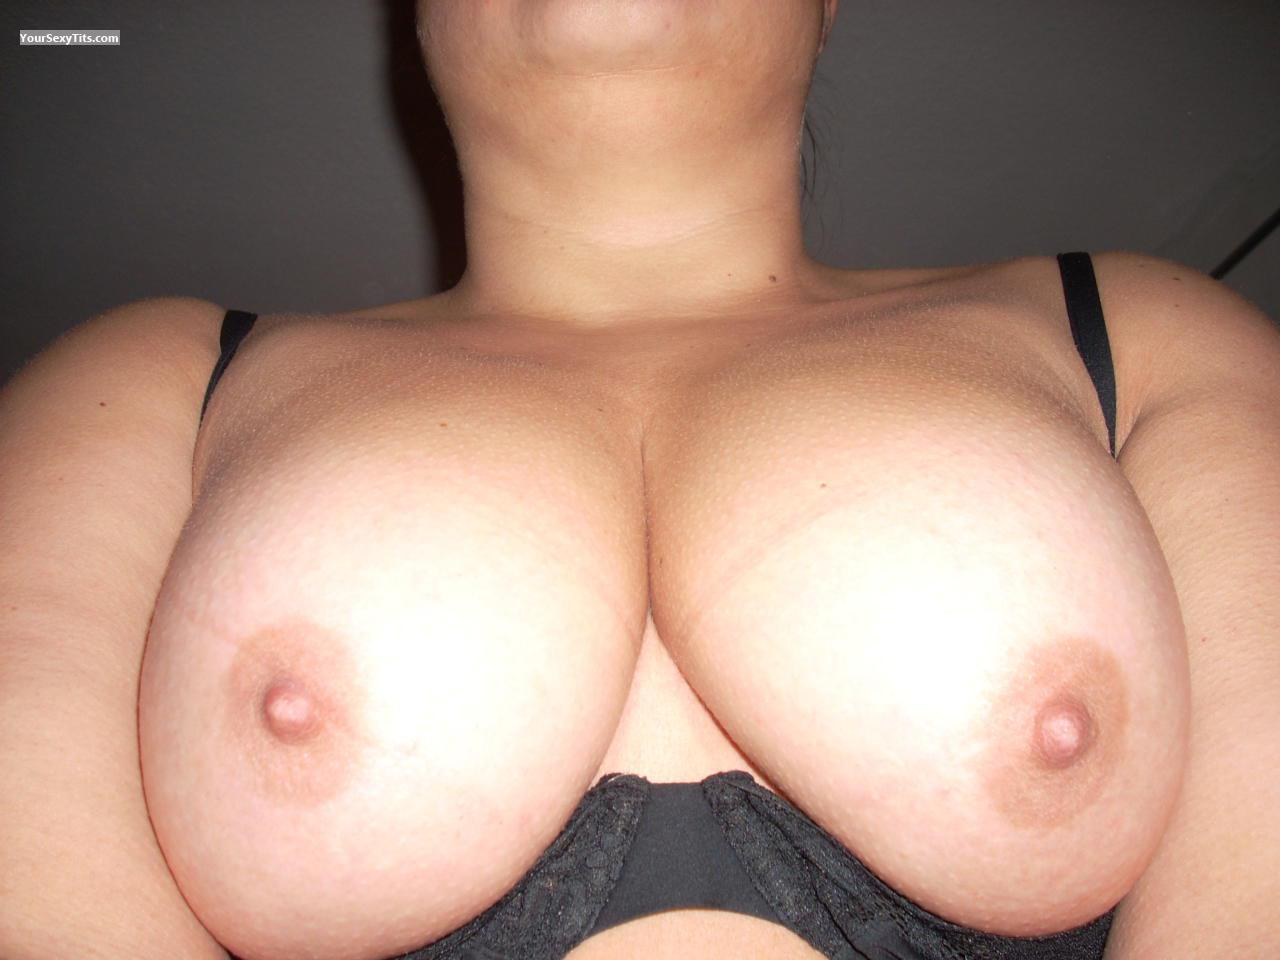 Tit Flash: Wife's Medium Tits - Suzy 4 from Germany